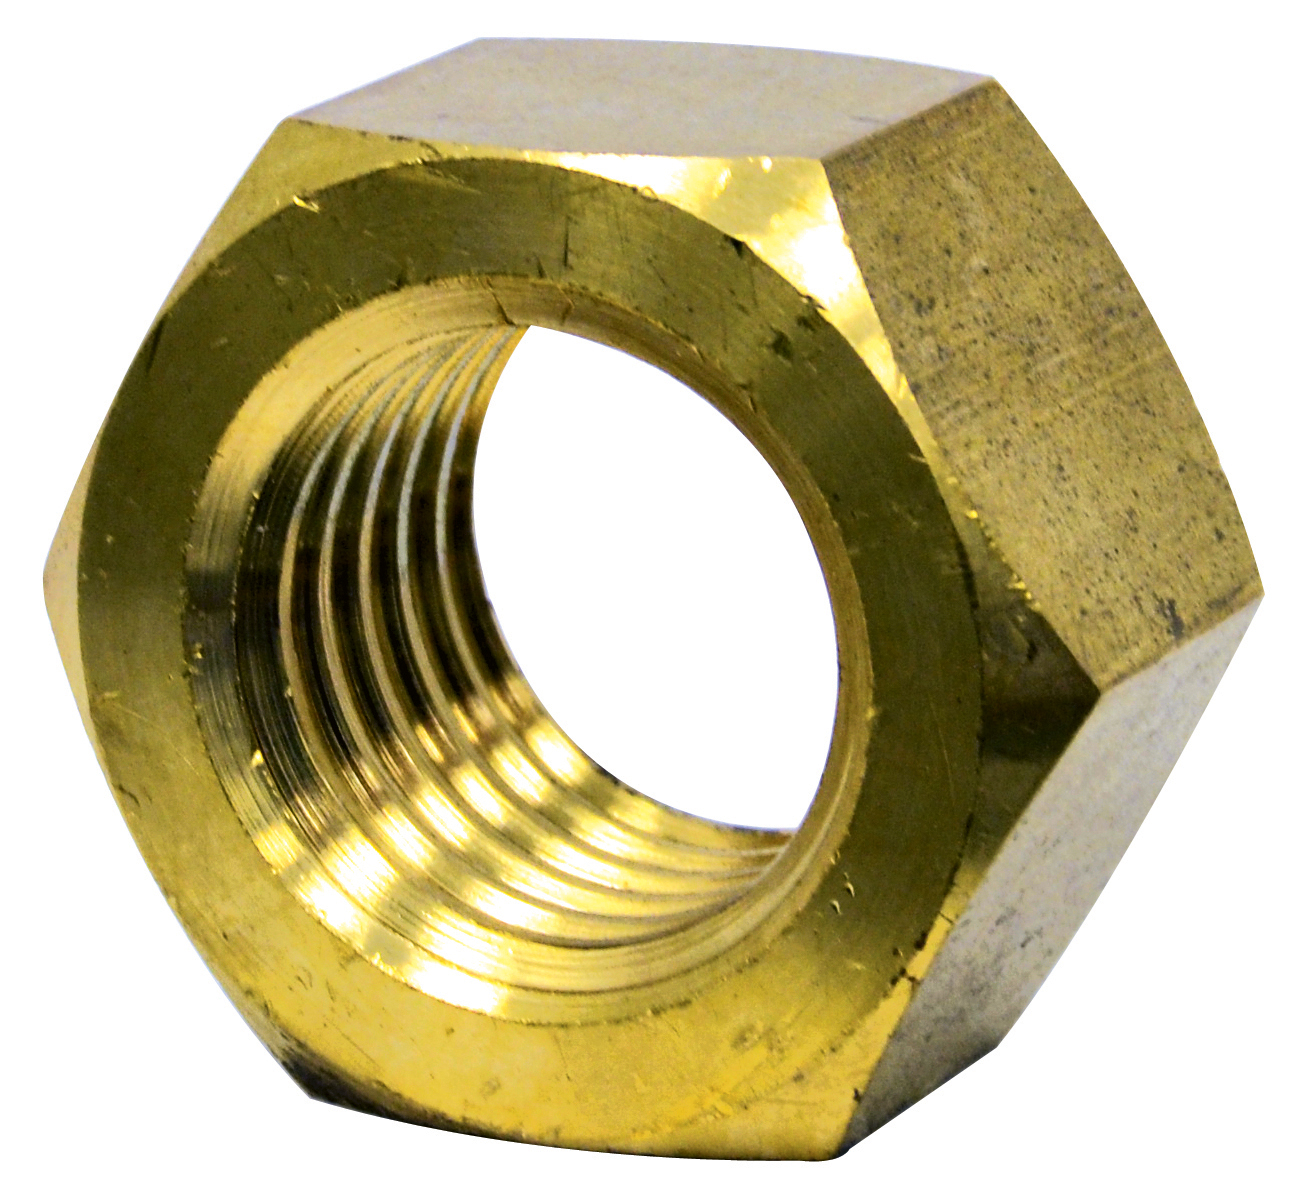 #10-24 Coarse Brass Machine Screw Hex Nut